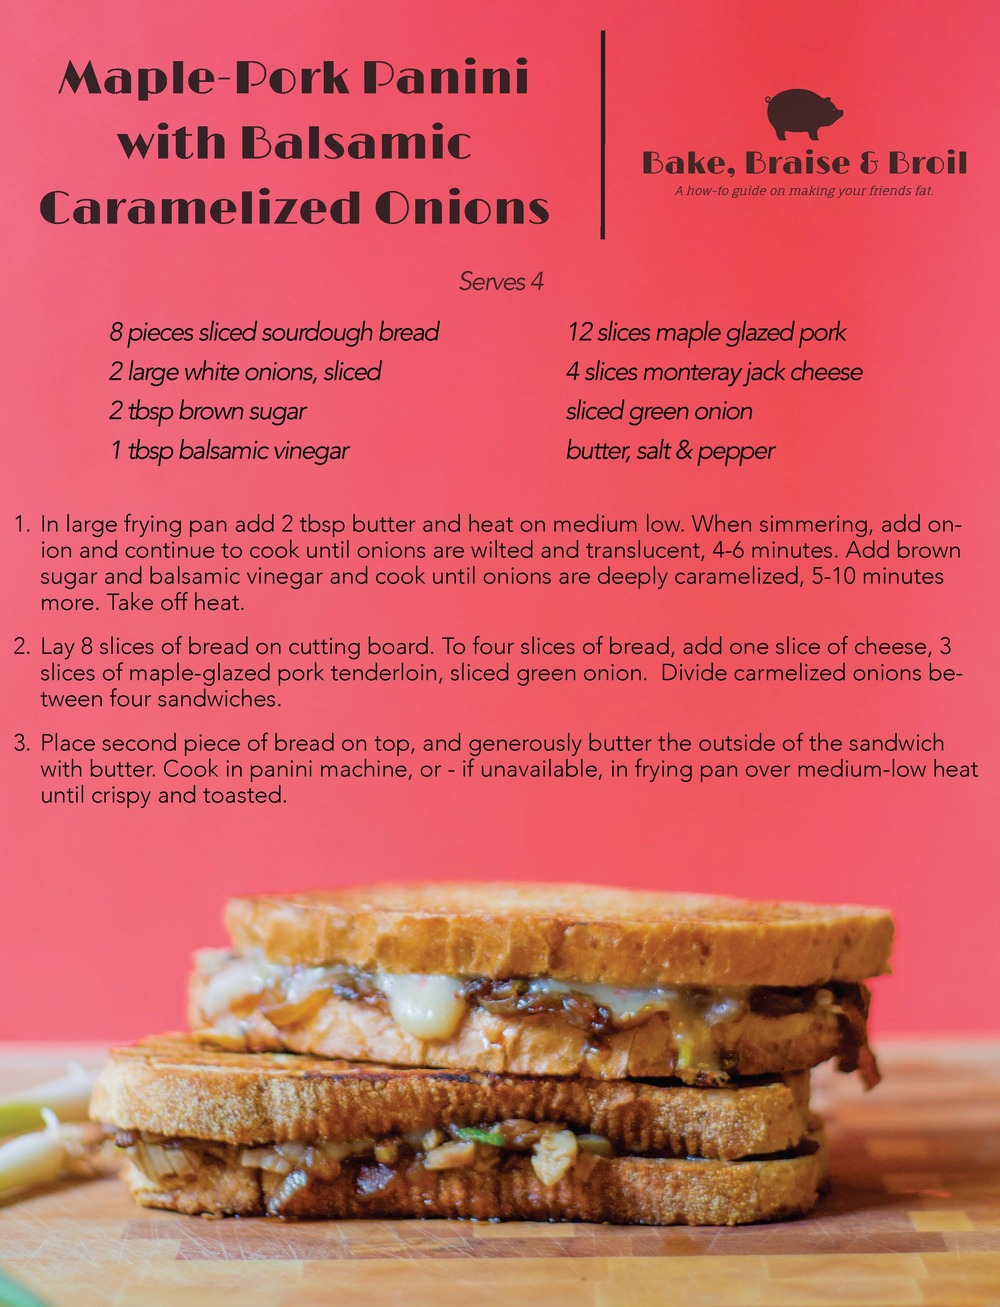 Maple Pork Panini with Caramelized Onions